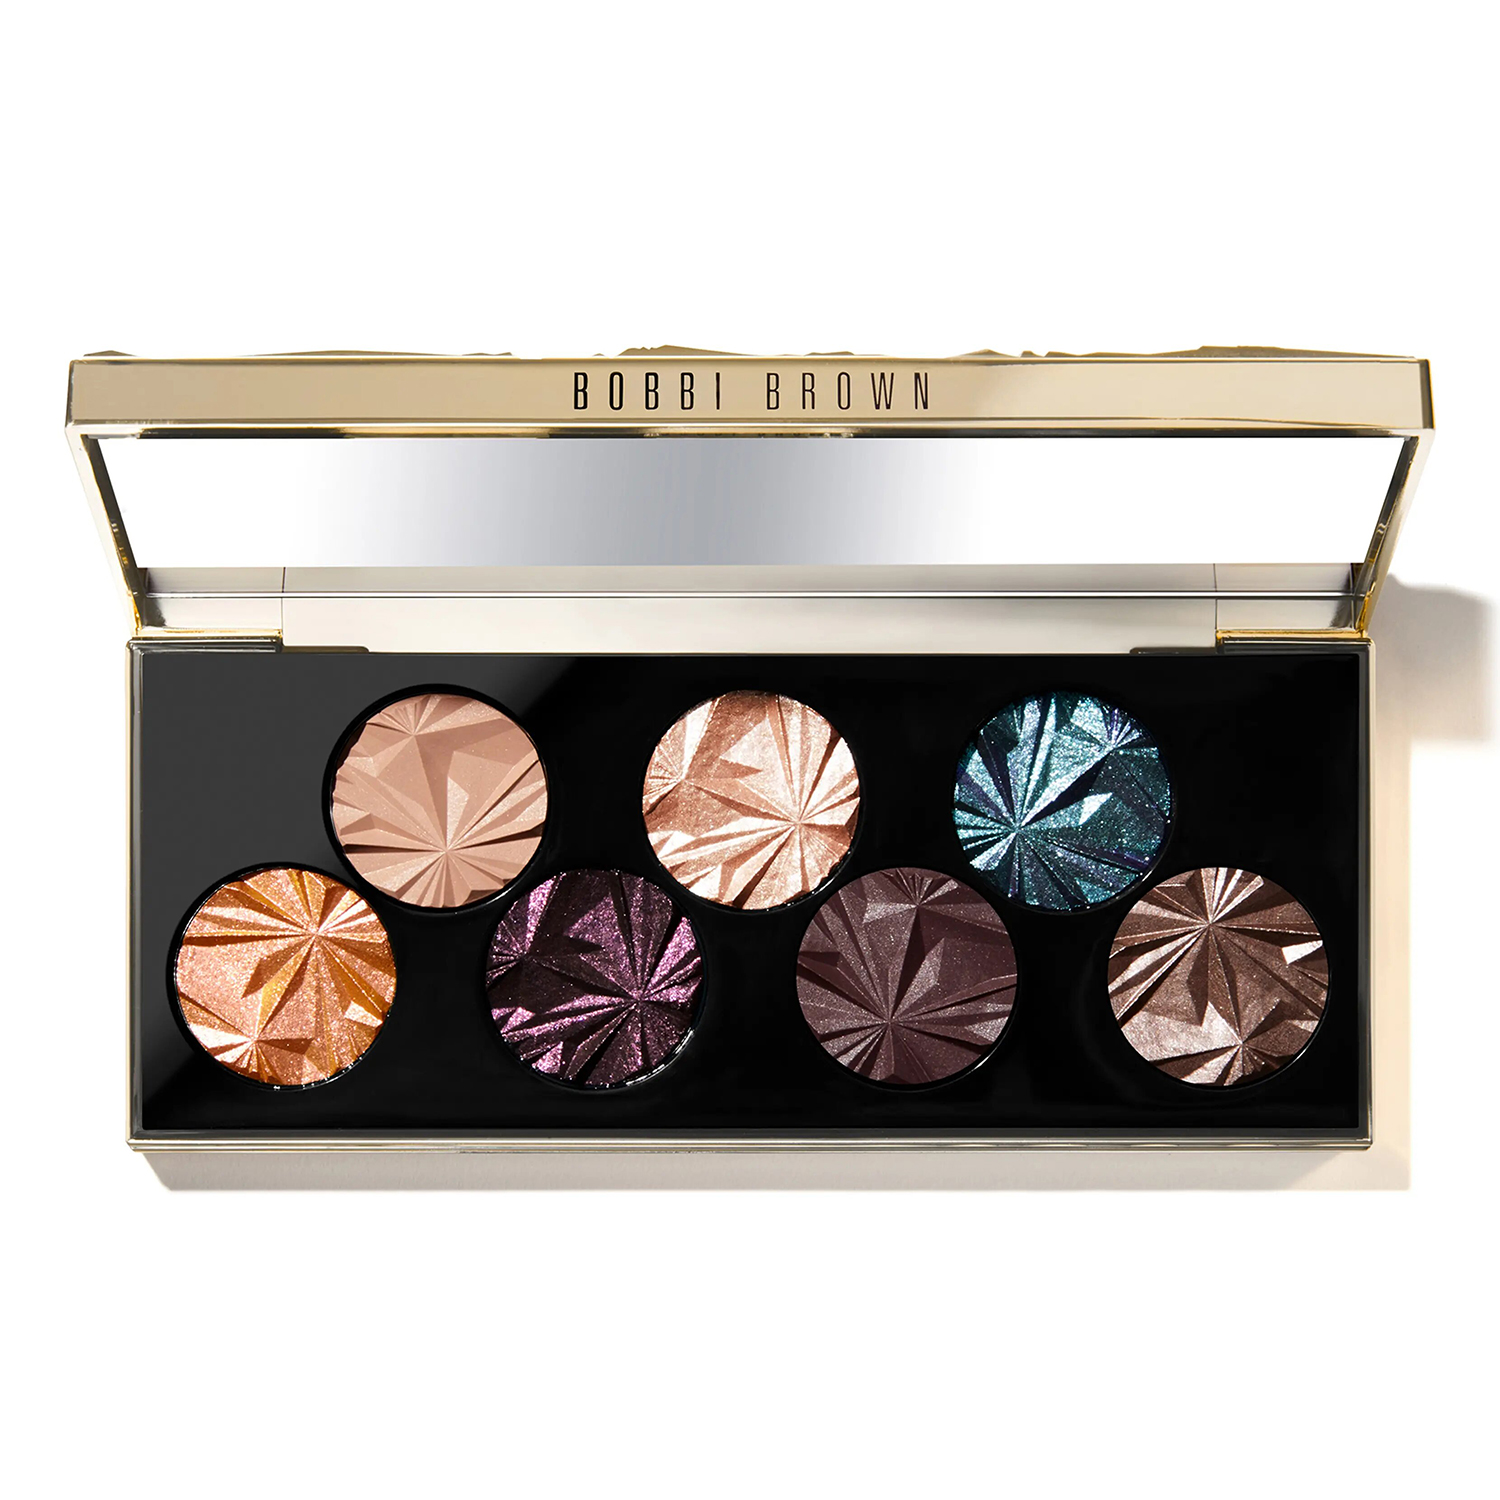 Bobbi Brown Makeup